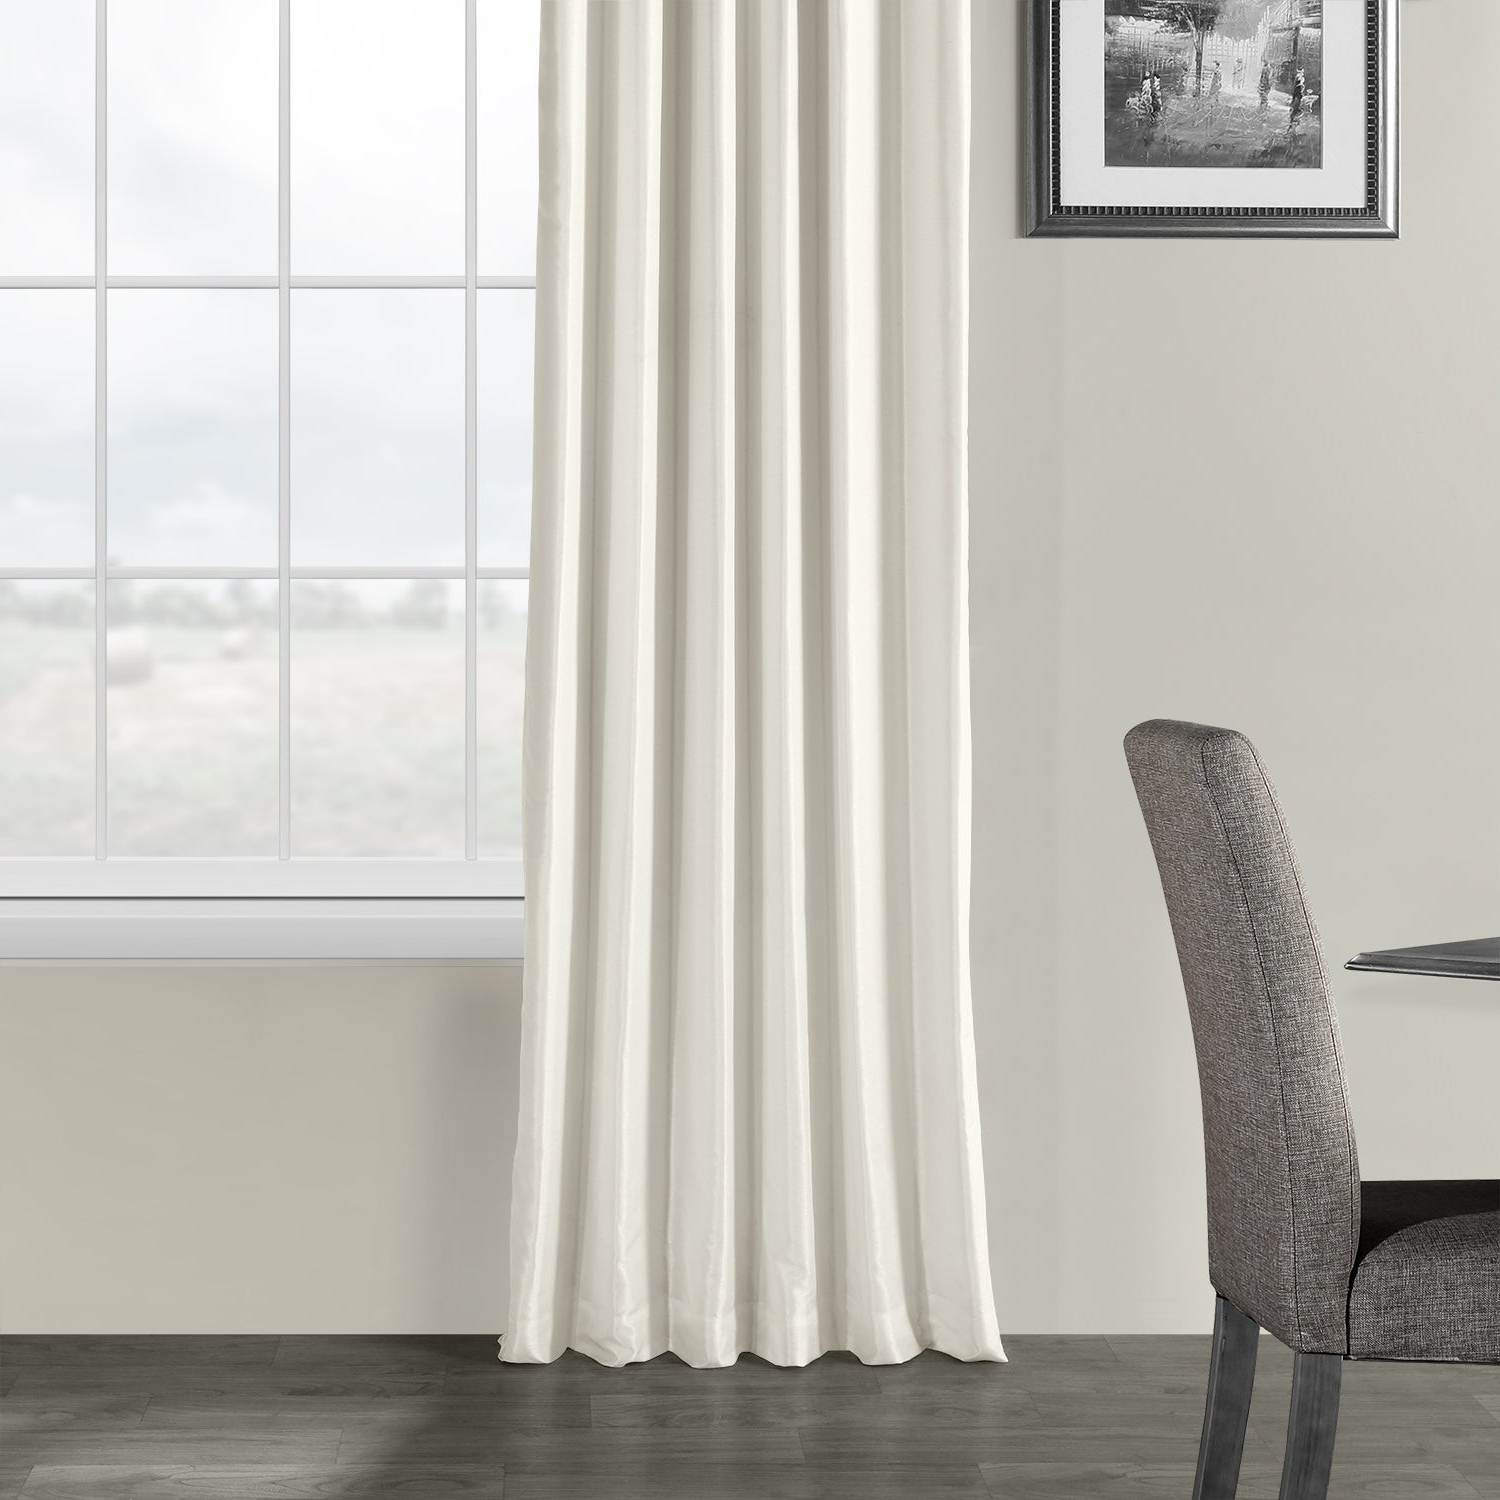 Exclusive Fabrics Off White Vintage Faux Textured Dupioni Silk Curtain With Regard To 2020 Off White Vintage Faux Textured Silk Curtains (Gallery 4 of 20)